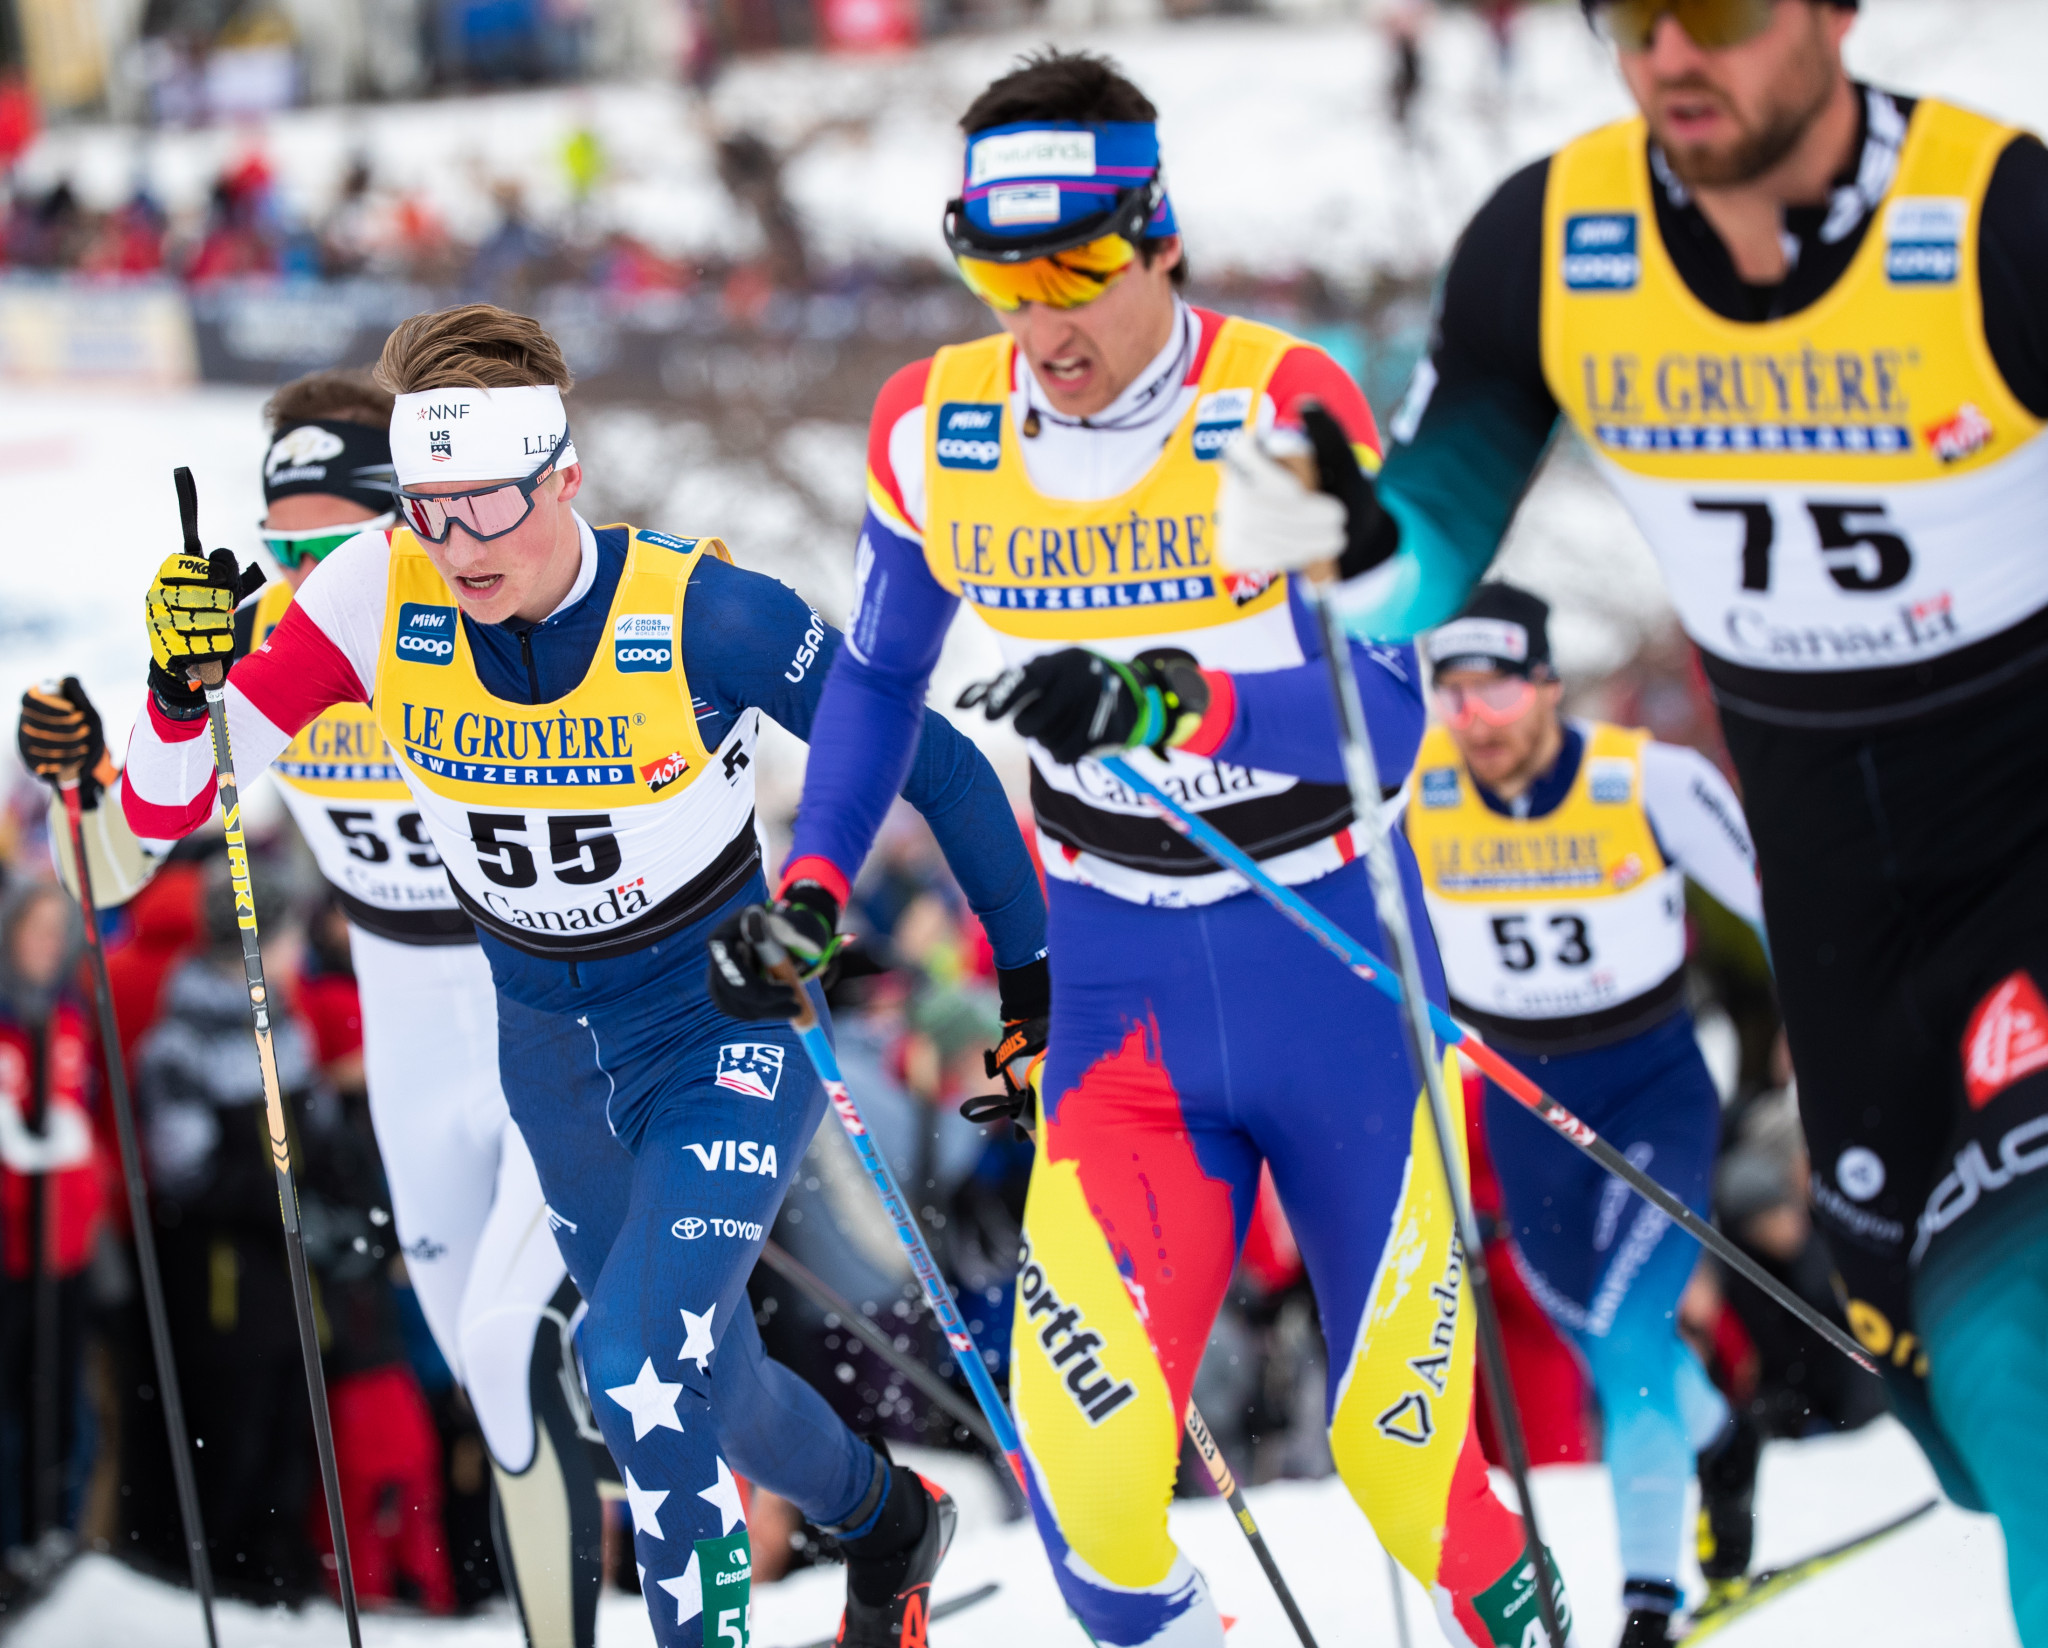 Schumacher and Fossesholm claim wins at FIS Nordic Junior and Under-23 Cross-Country World Ski Championships